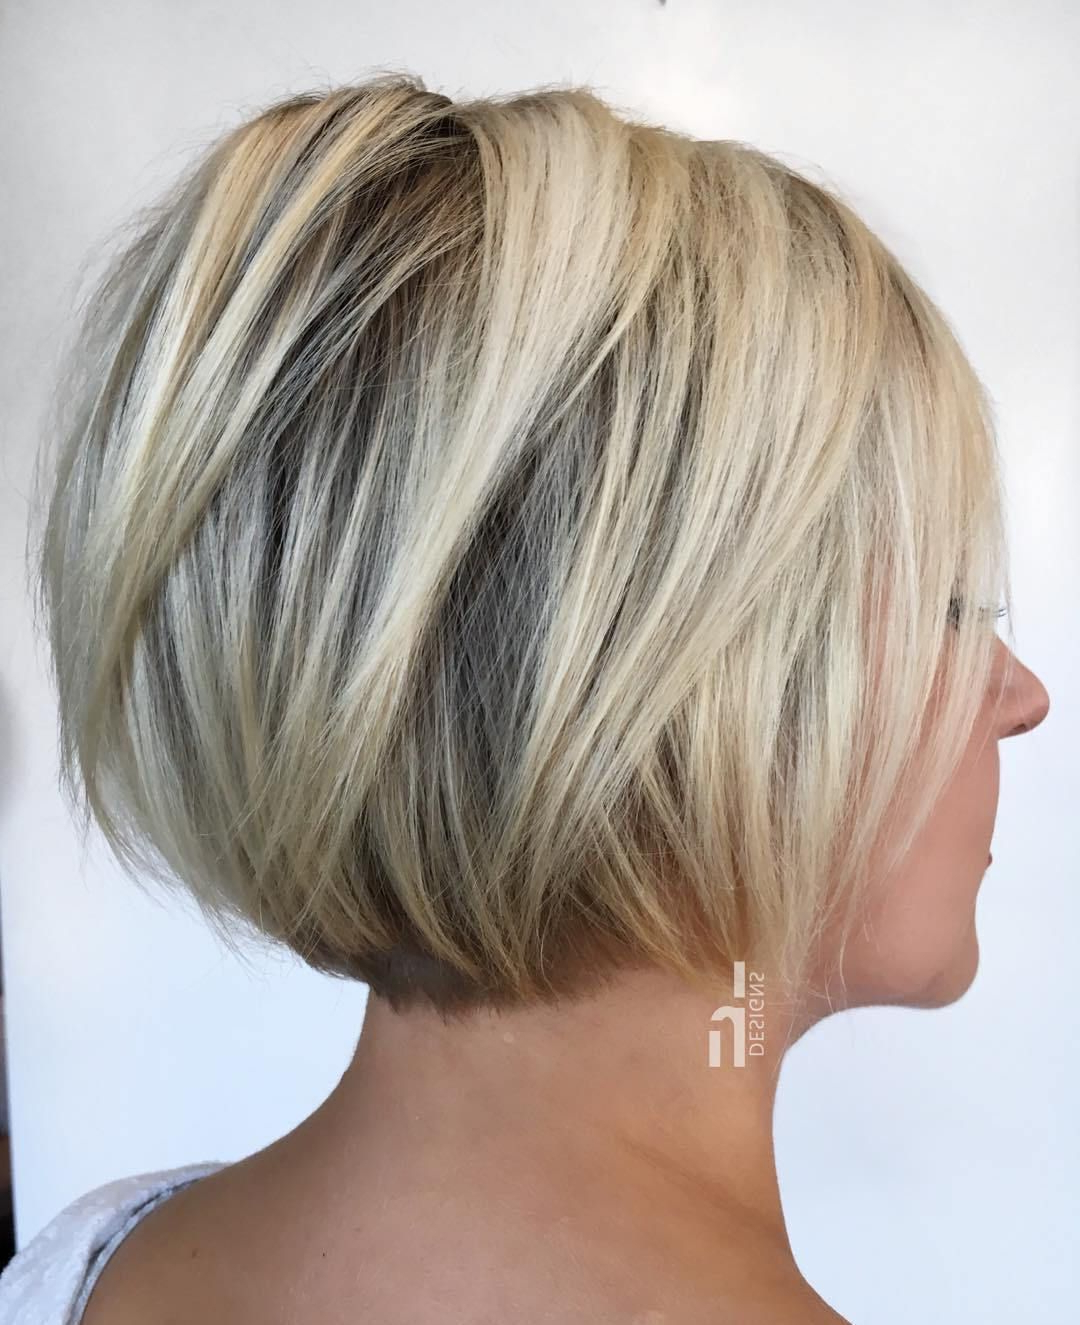 90 Classy And Simple Short Hairstyles For Women Over 50 | My Bob Fav With Regard To Messy Pixie Haircuts With V Cut Layers (View 14 of 20)